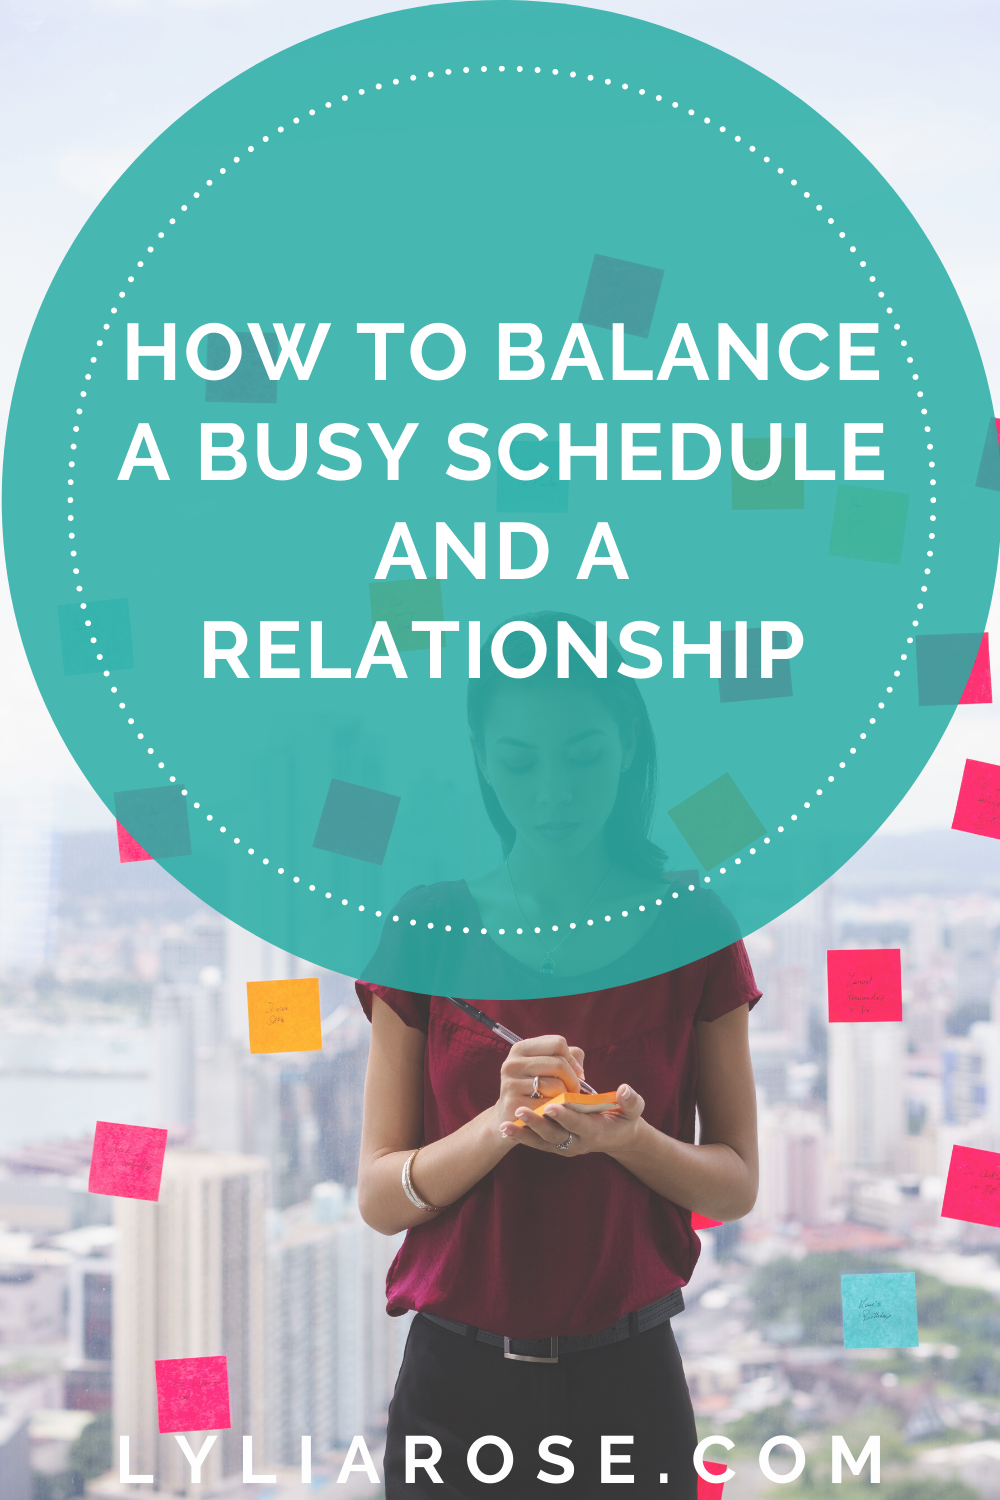 How to balance a busy schedule and a relationship (1)